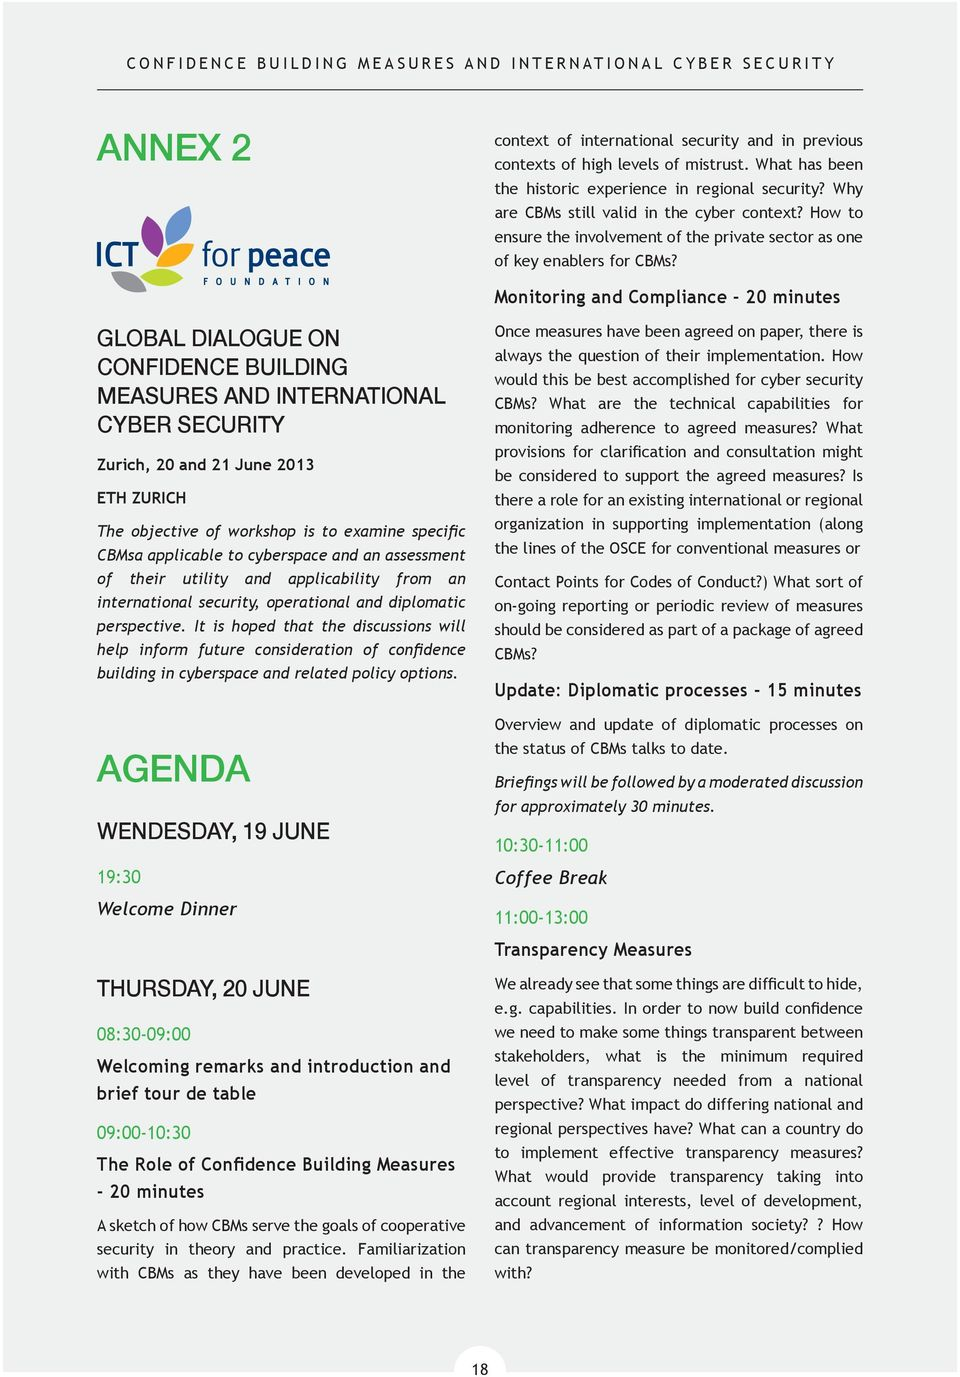 Monitoring and Compliance - 20 minutes GLOBAL DIALOGUE ON CONFIDENCE BUILDING MEASURES AND INTERNATIONAL CYBER SECURITY Zurich, 20 and 21 June 2013 ETH ZURICH The objective of workshop is to examine